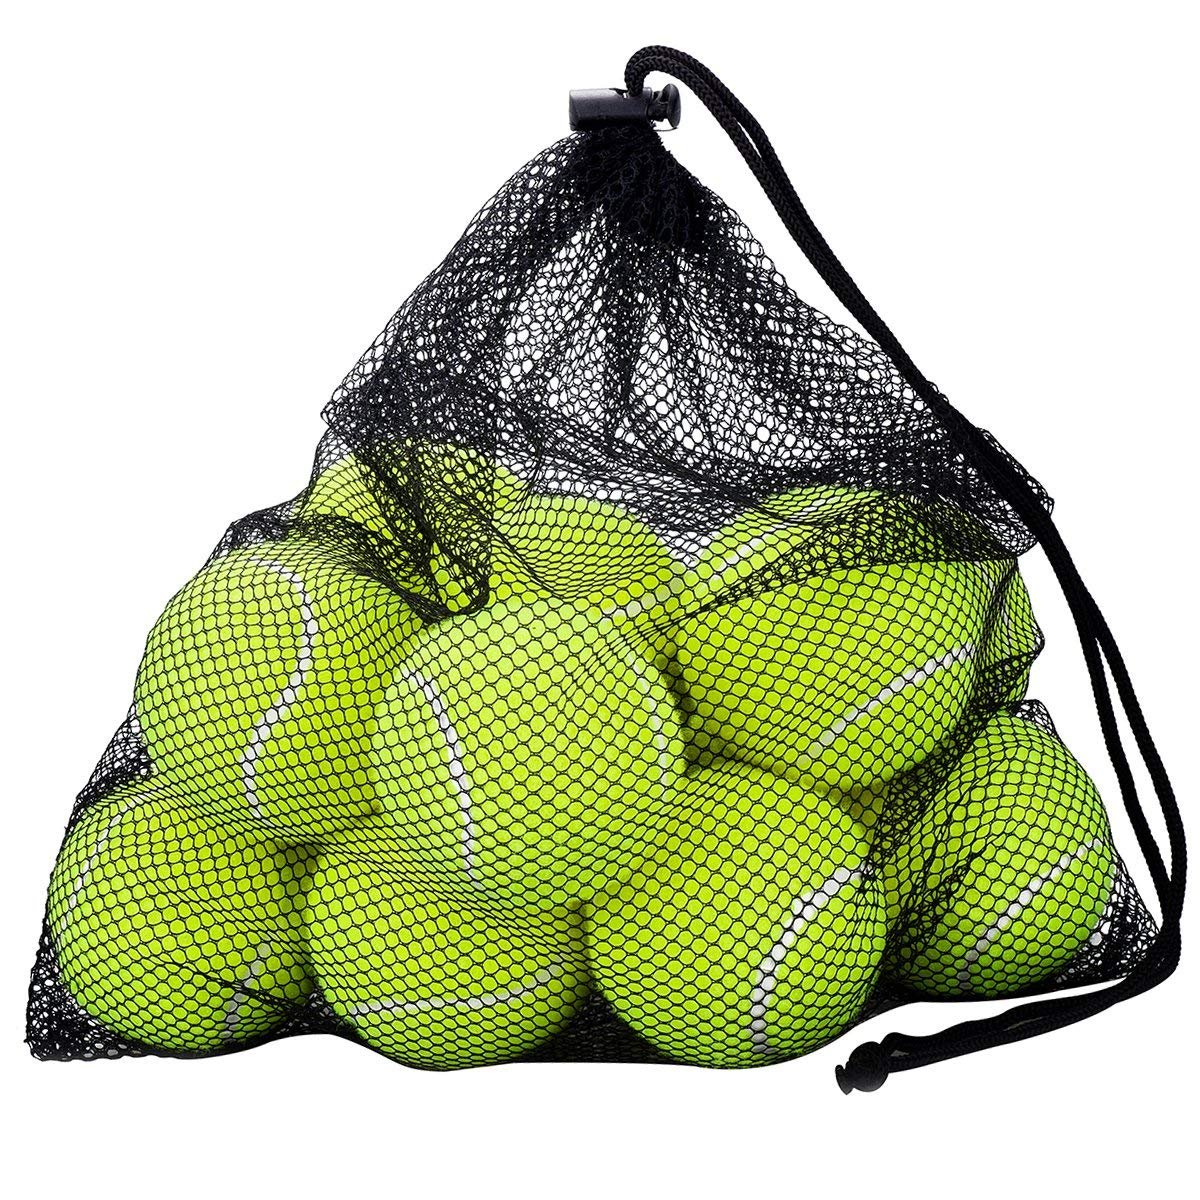 Wuudi Mesh Carry Bag of 12 Tennis Balls, Sport Play Cricket Dog Toy Ball, Sturdy & Durable, Great For Lessons, Practice, Throwing Machines & Playing with Pets